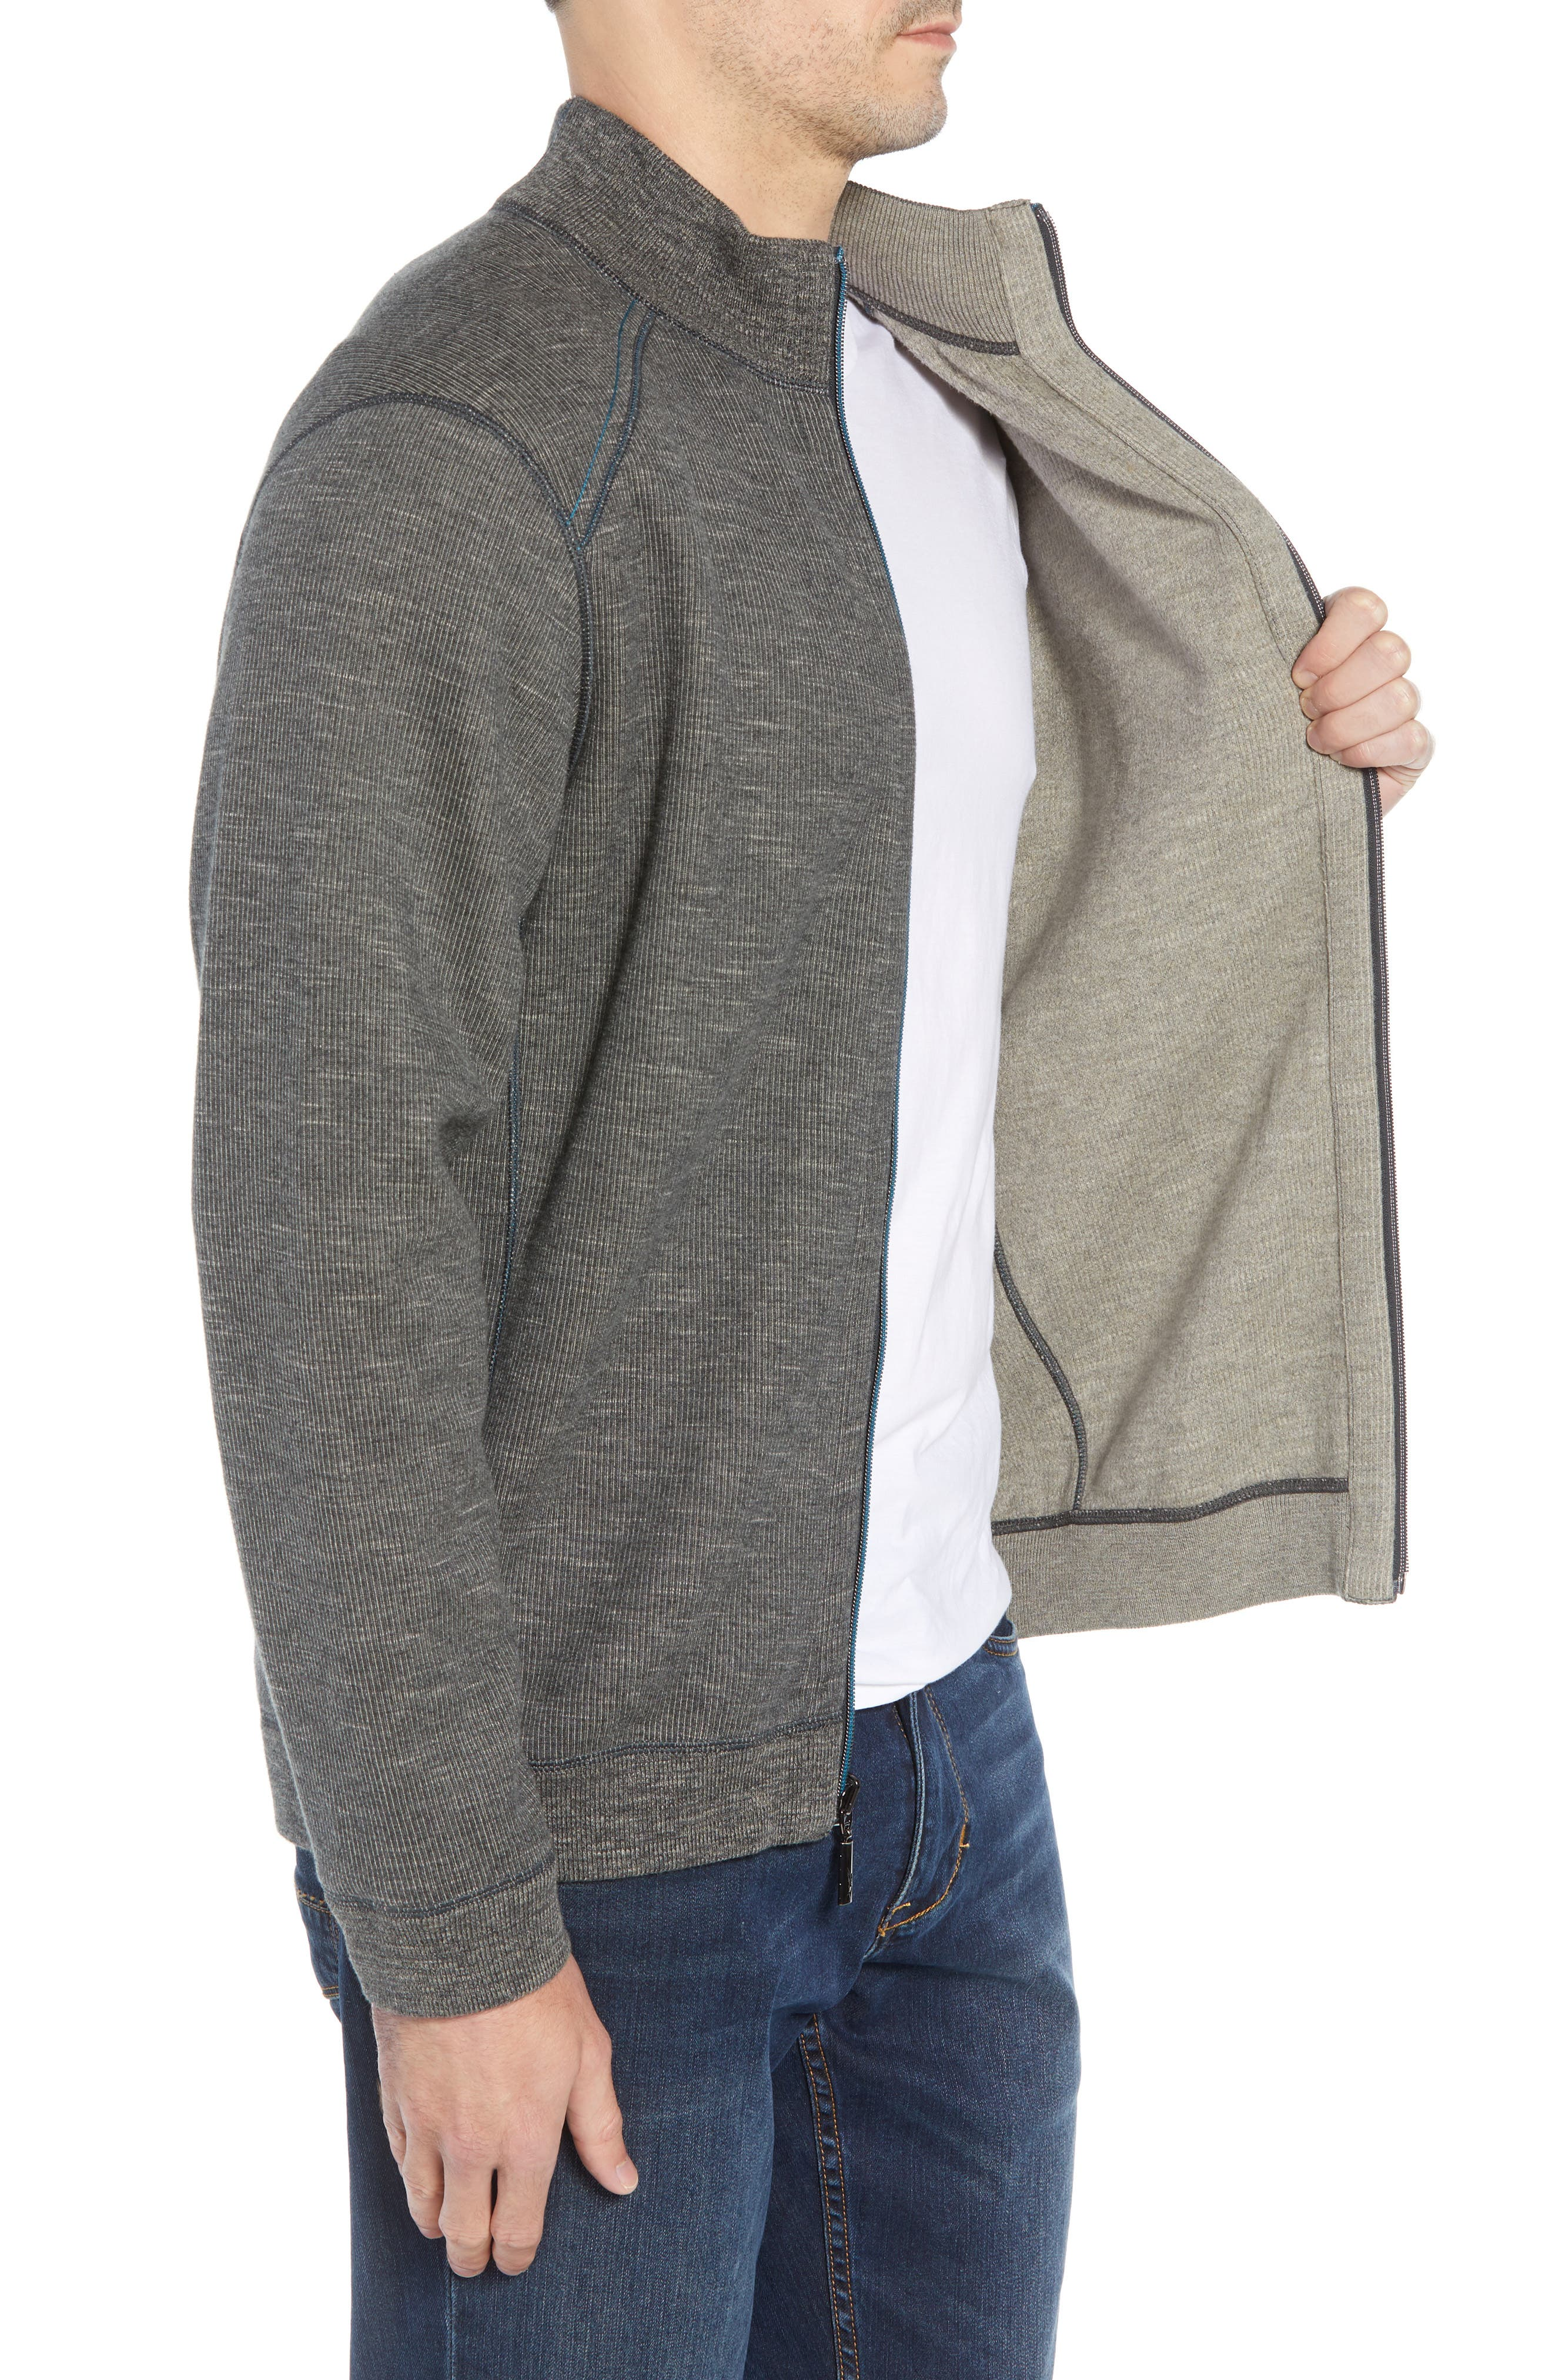 Flipsider Reversible Jacket,                             Alternate thumbnail 4, color,                             ONYX HEATHER